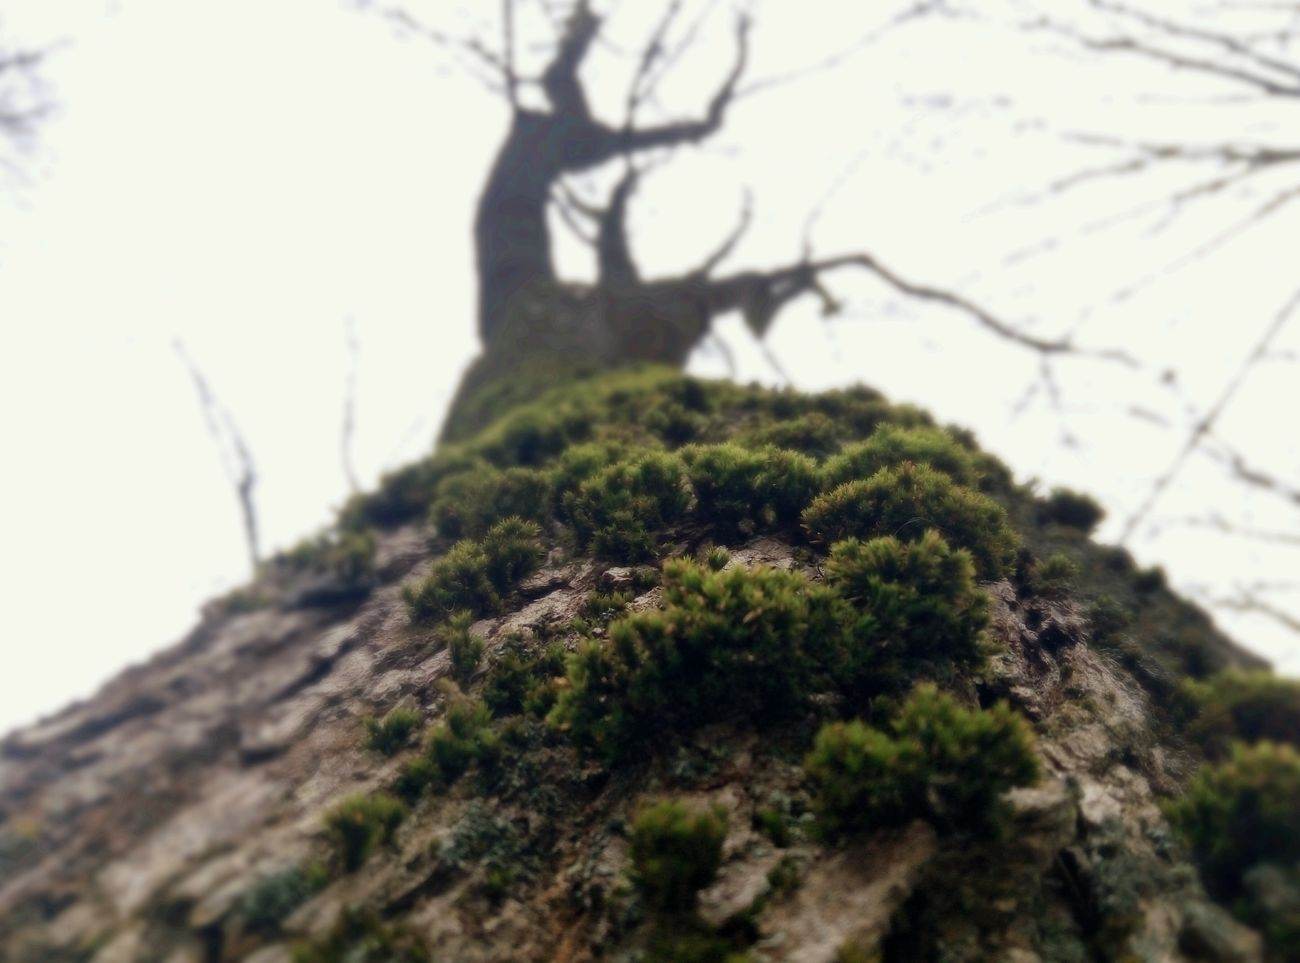 Tree Branch Tree Trunk Nature Low Angle View No People Outdoors Sky Beauty In Nature Day Close-up